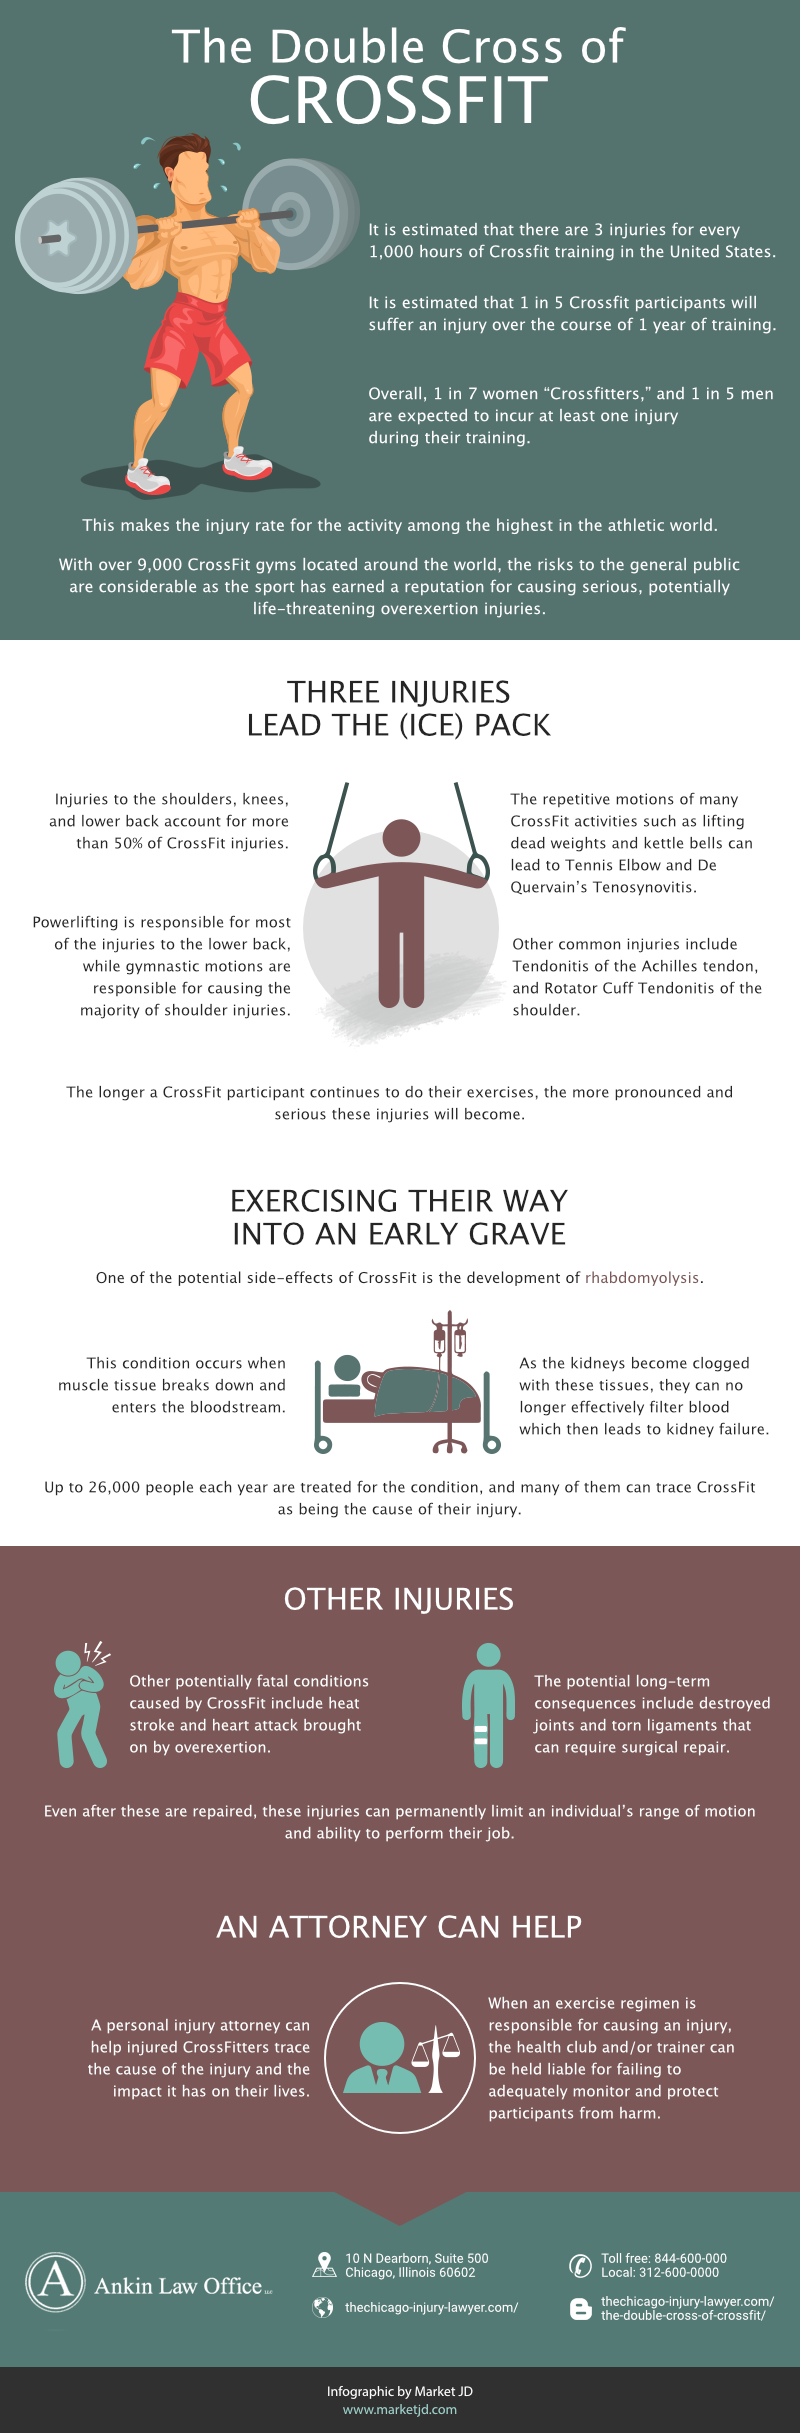 The Double Cross of Crossfit infographic_Best Personal Injury Attorney